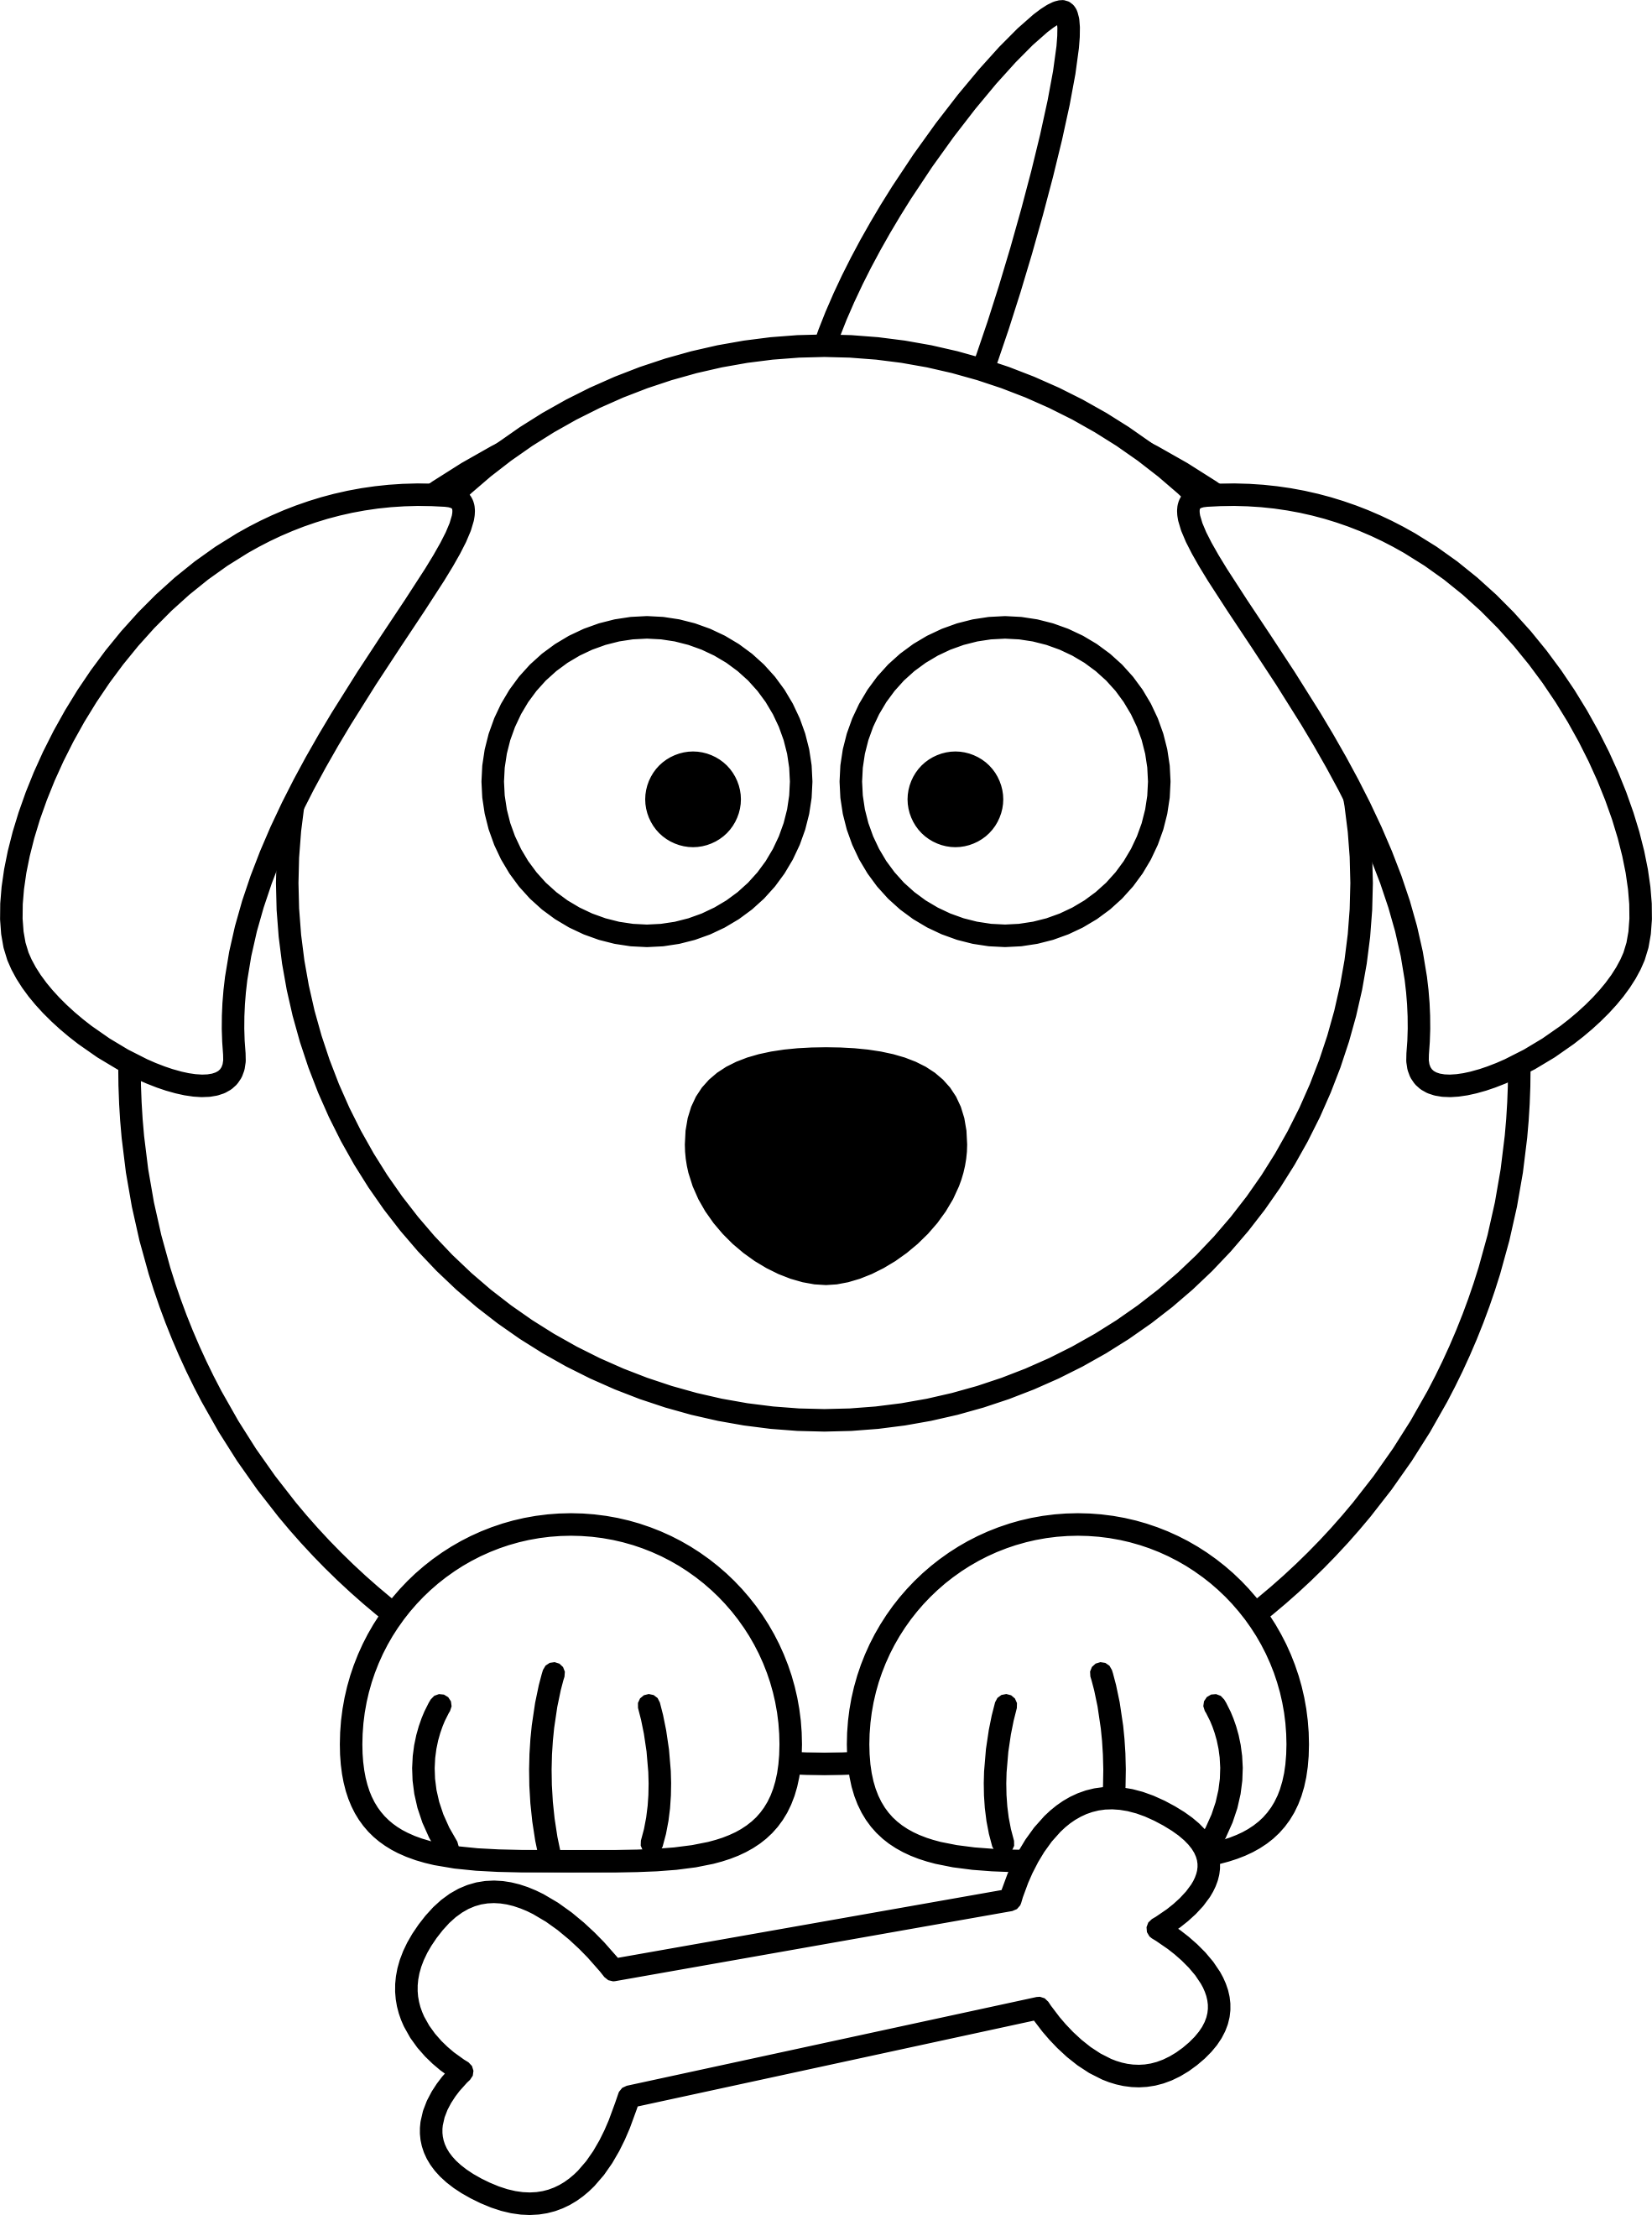 vector royalty free library Dog cartoon library. Clipart monkey black and white